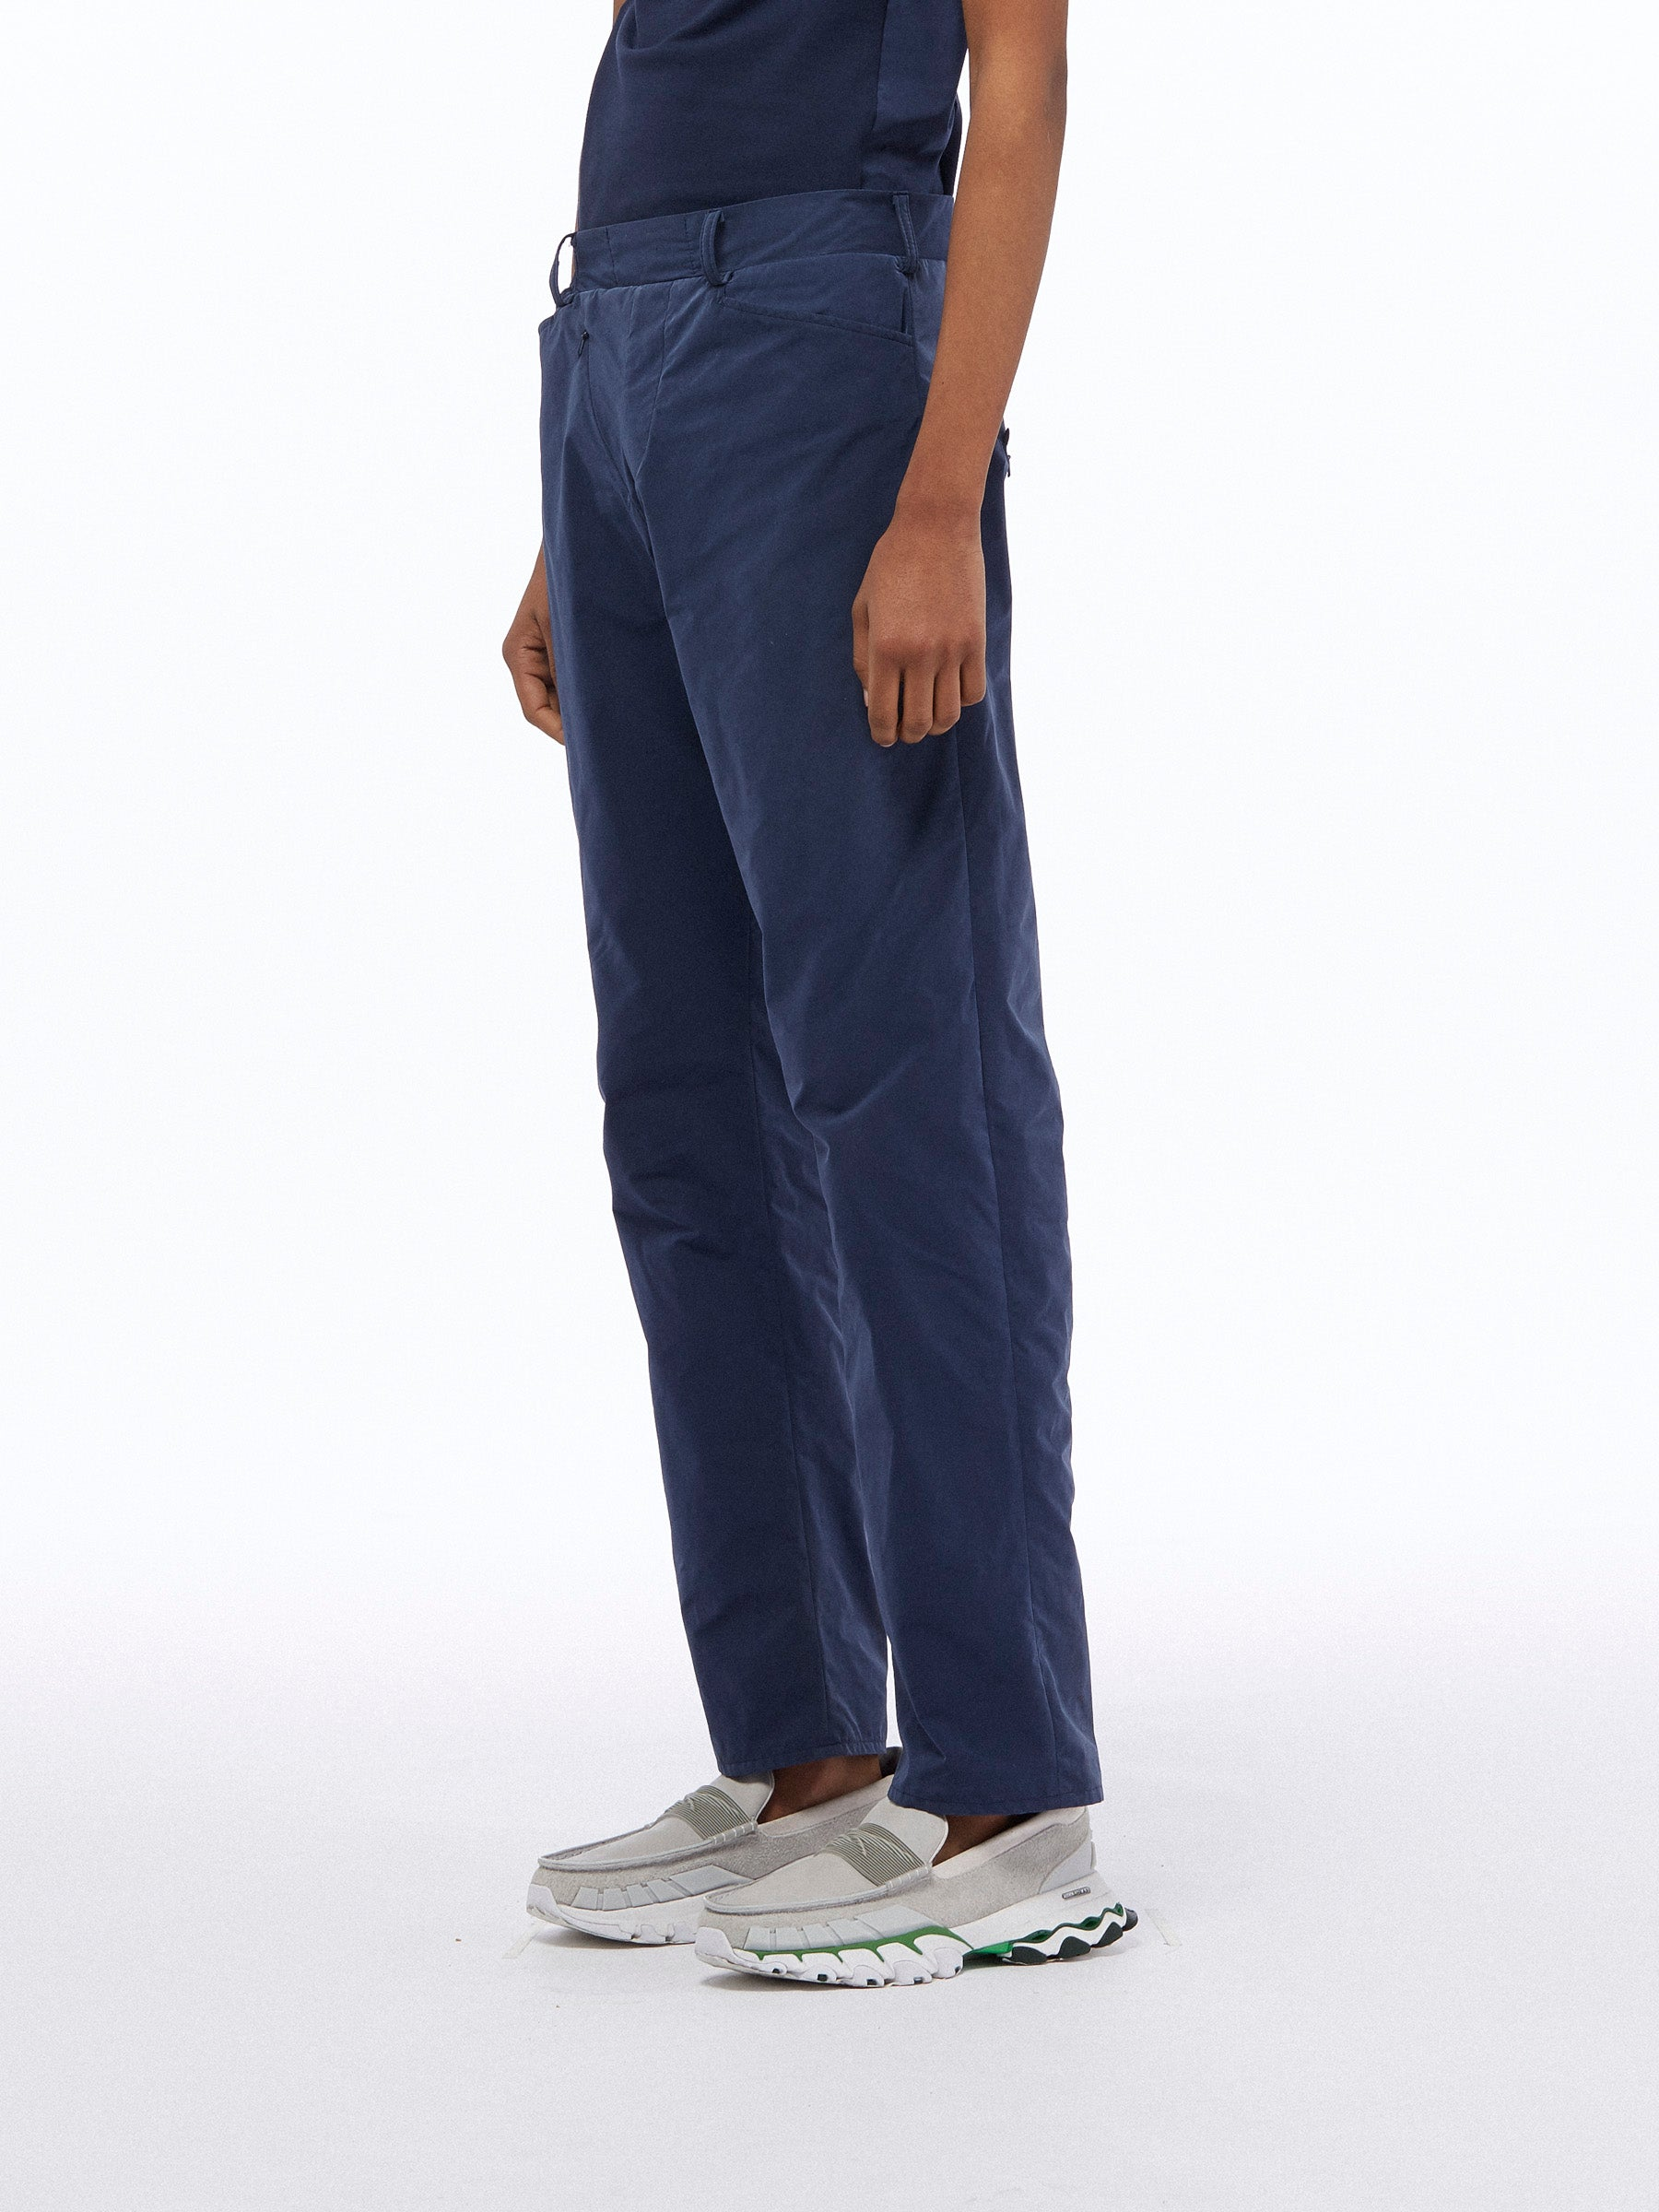 GOLF TROUSERS - NAVY